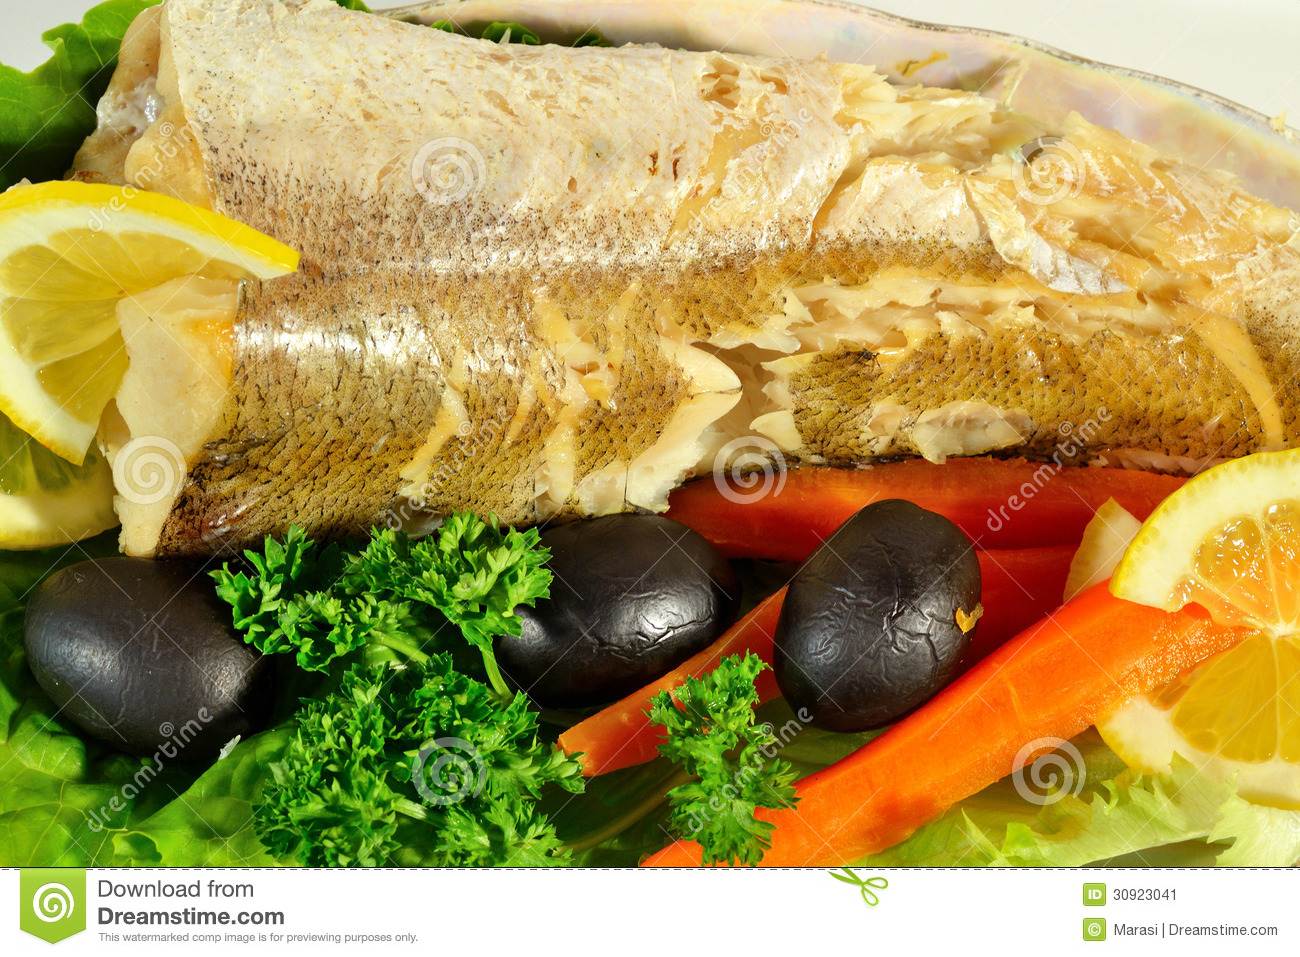 Fish with vegetables and herbs stock image image 30923041 for Fish with vegetables